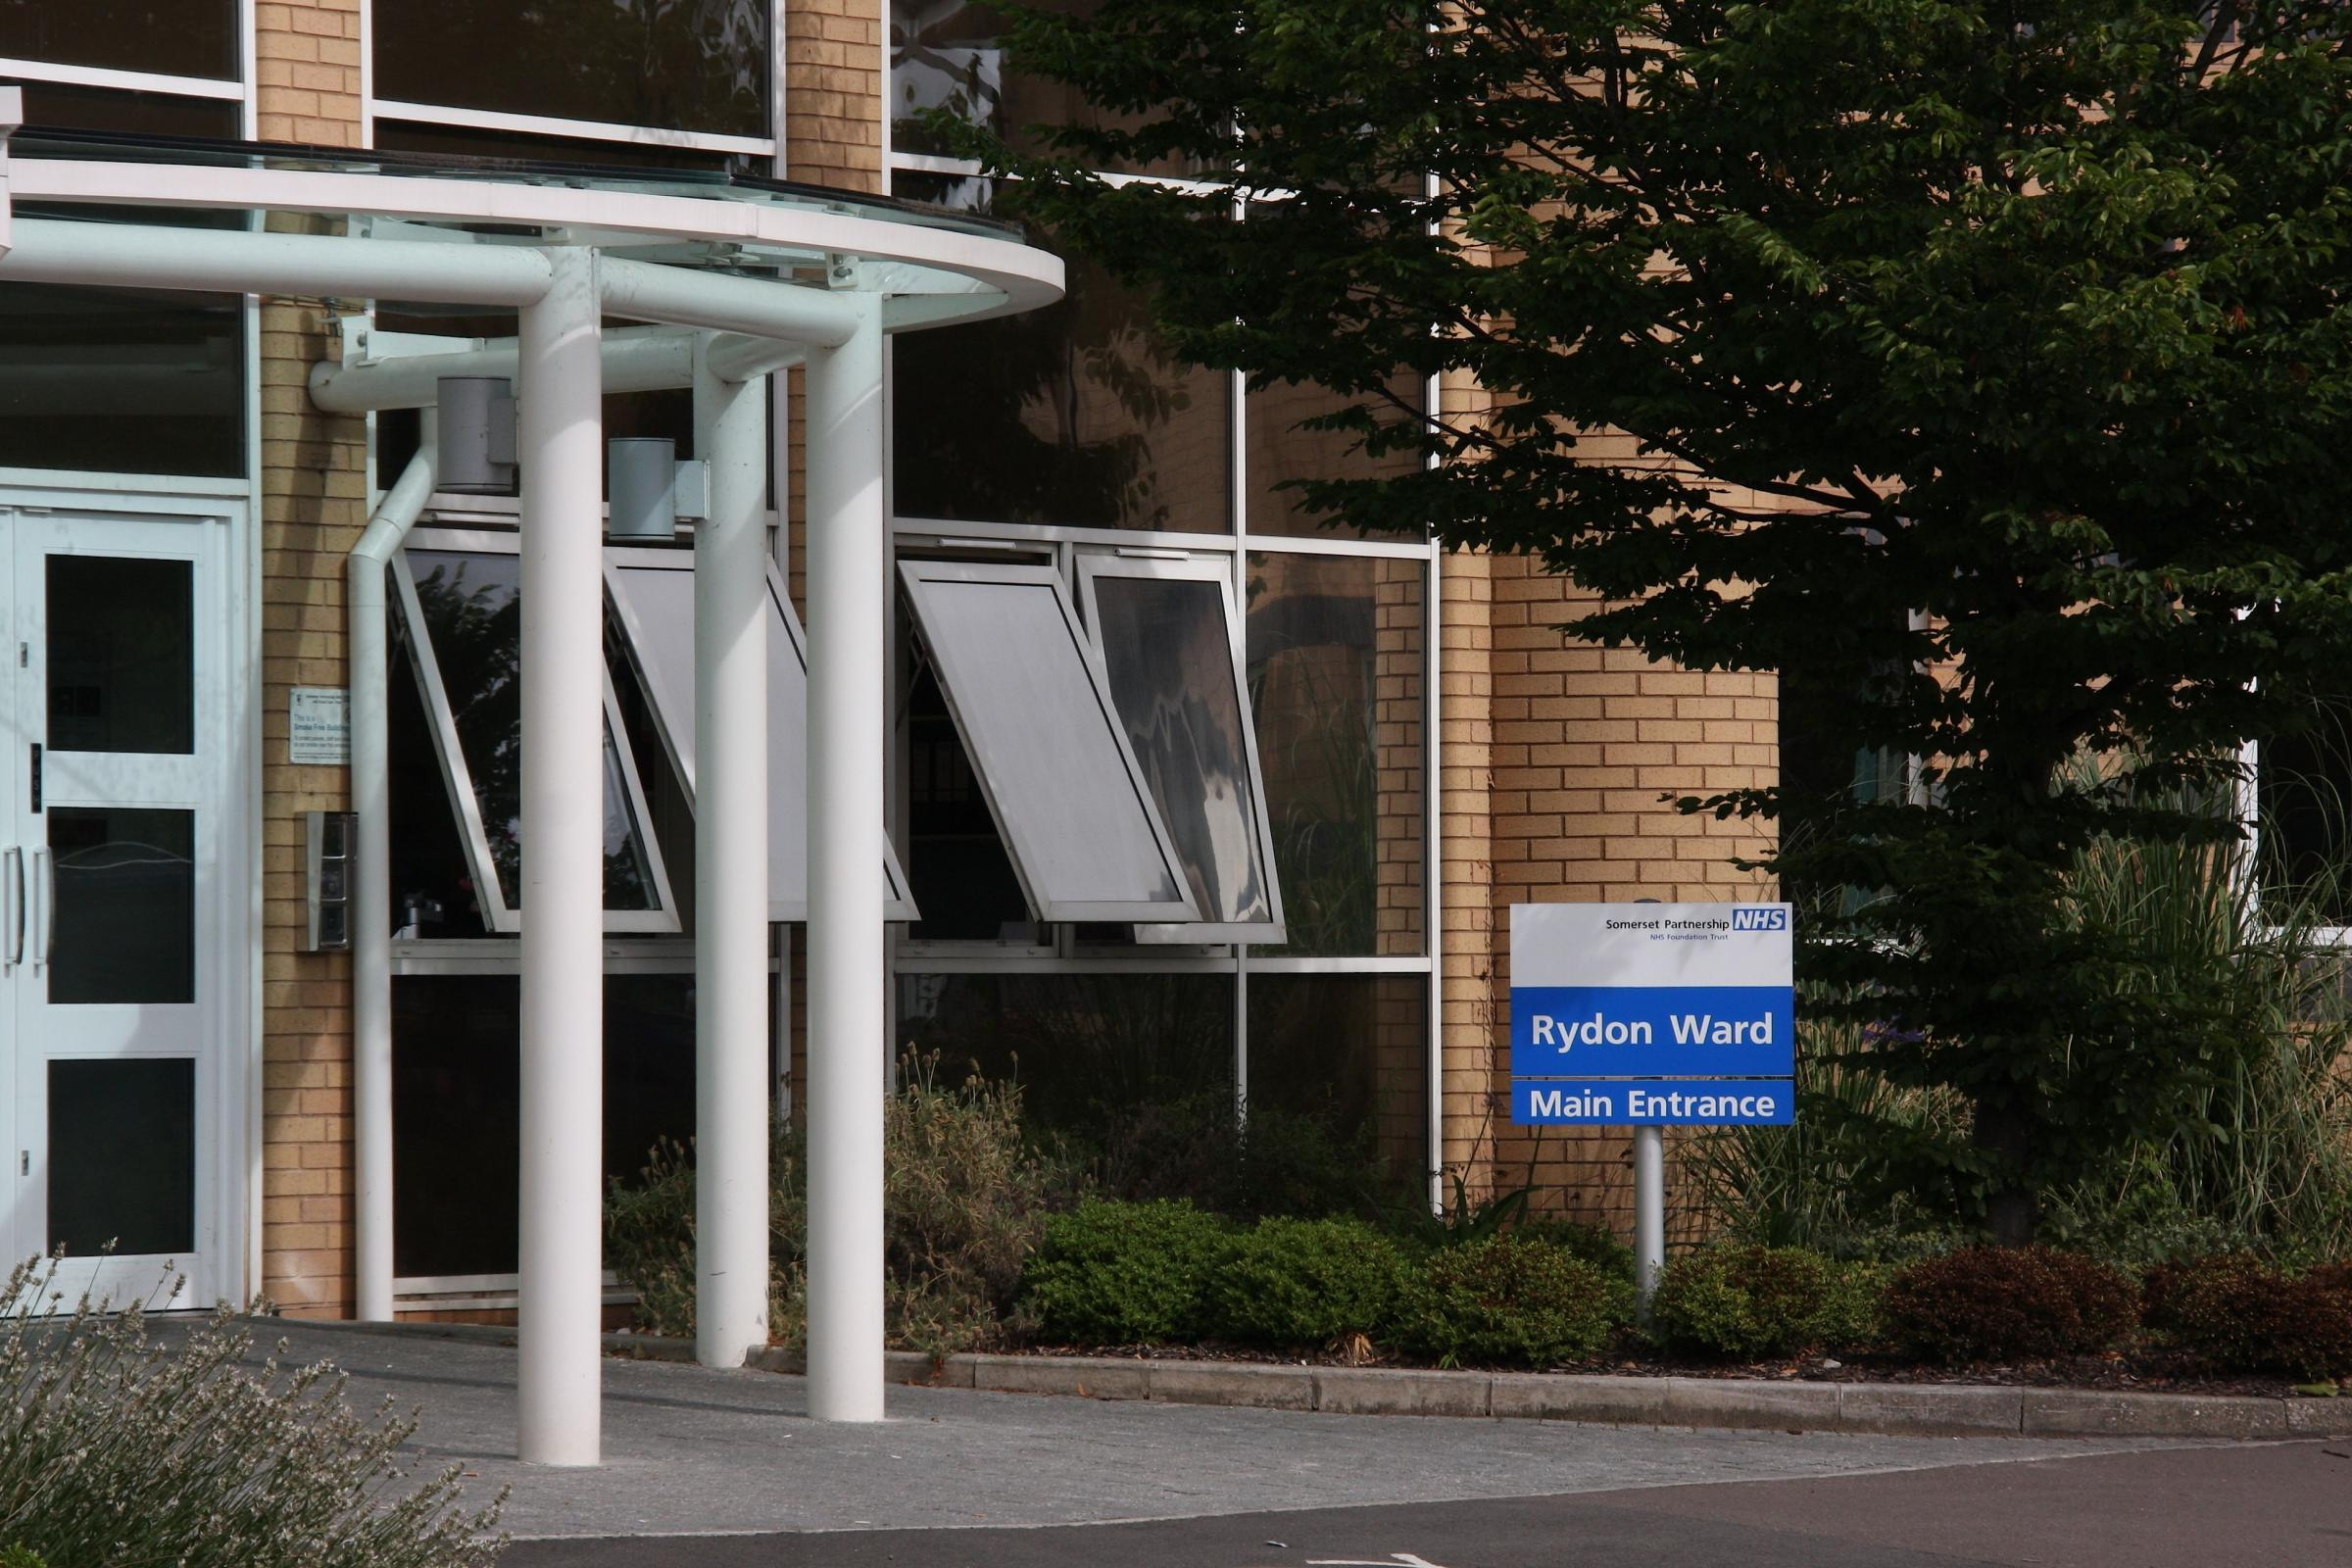 Rydon and Holford mental health wards in Taunton received excellent CQC report